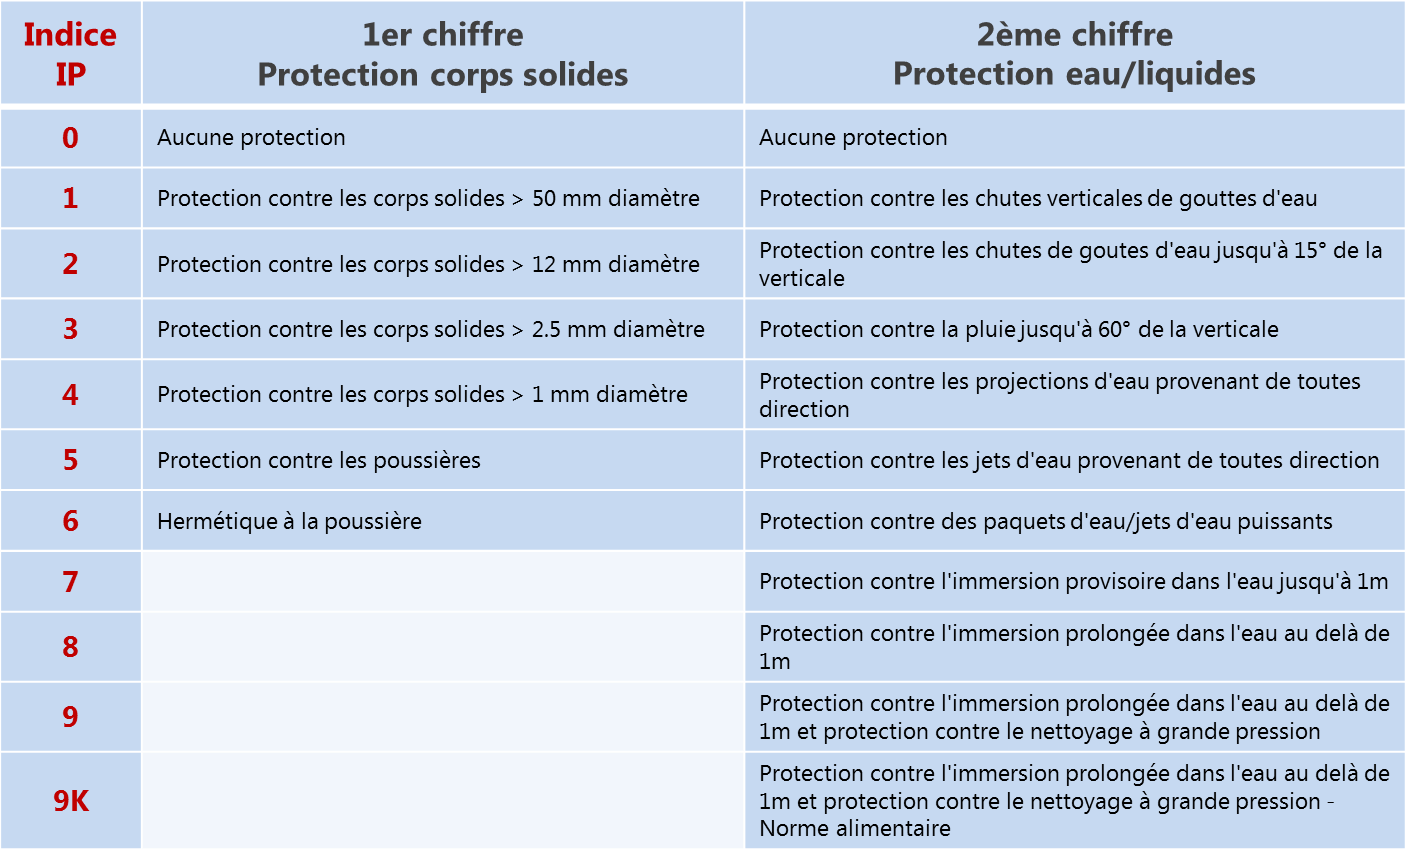 Indice de protection